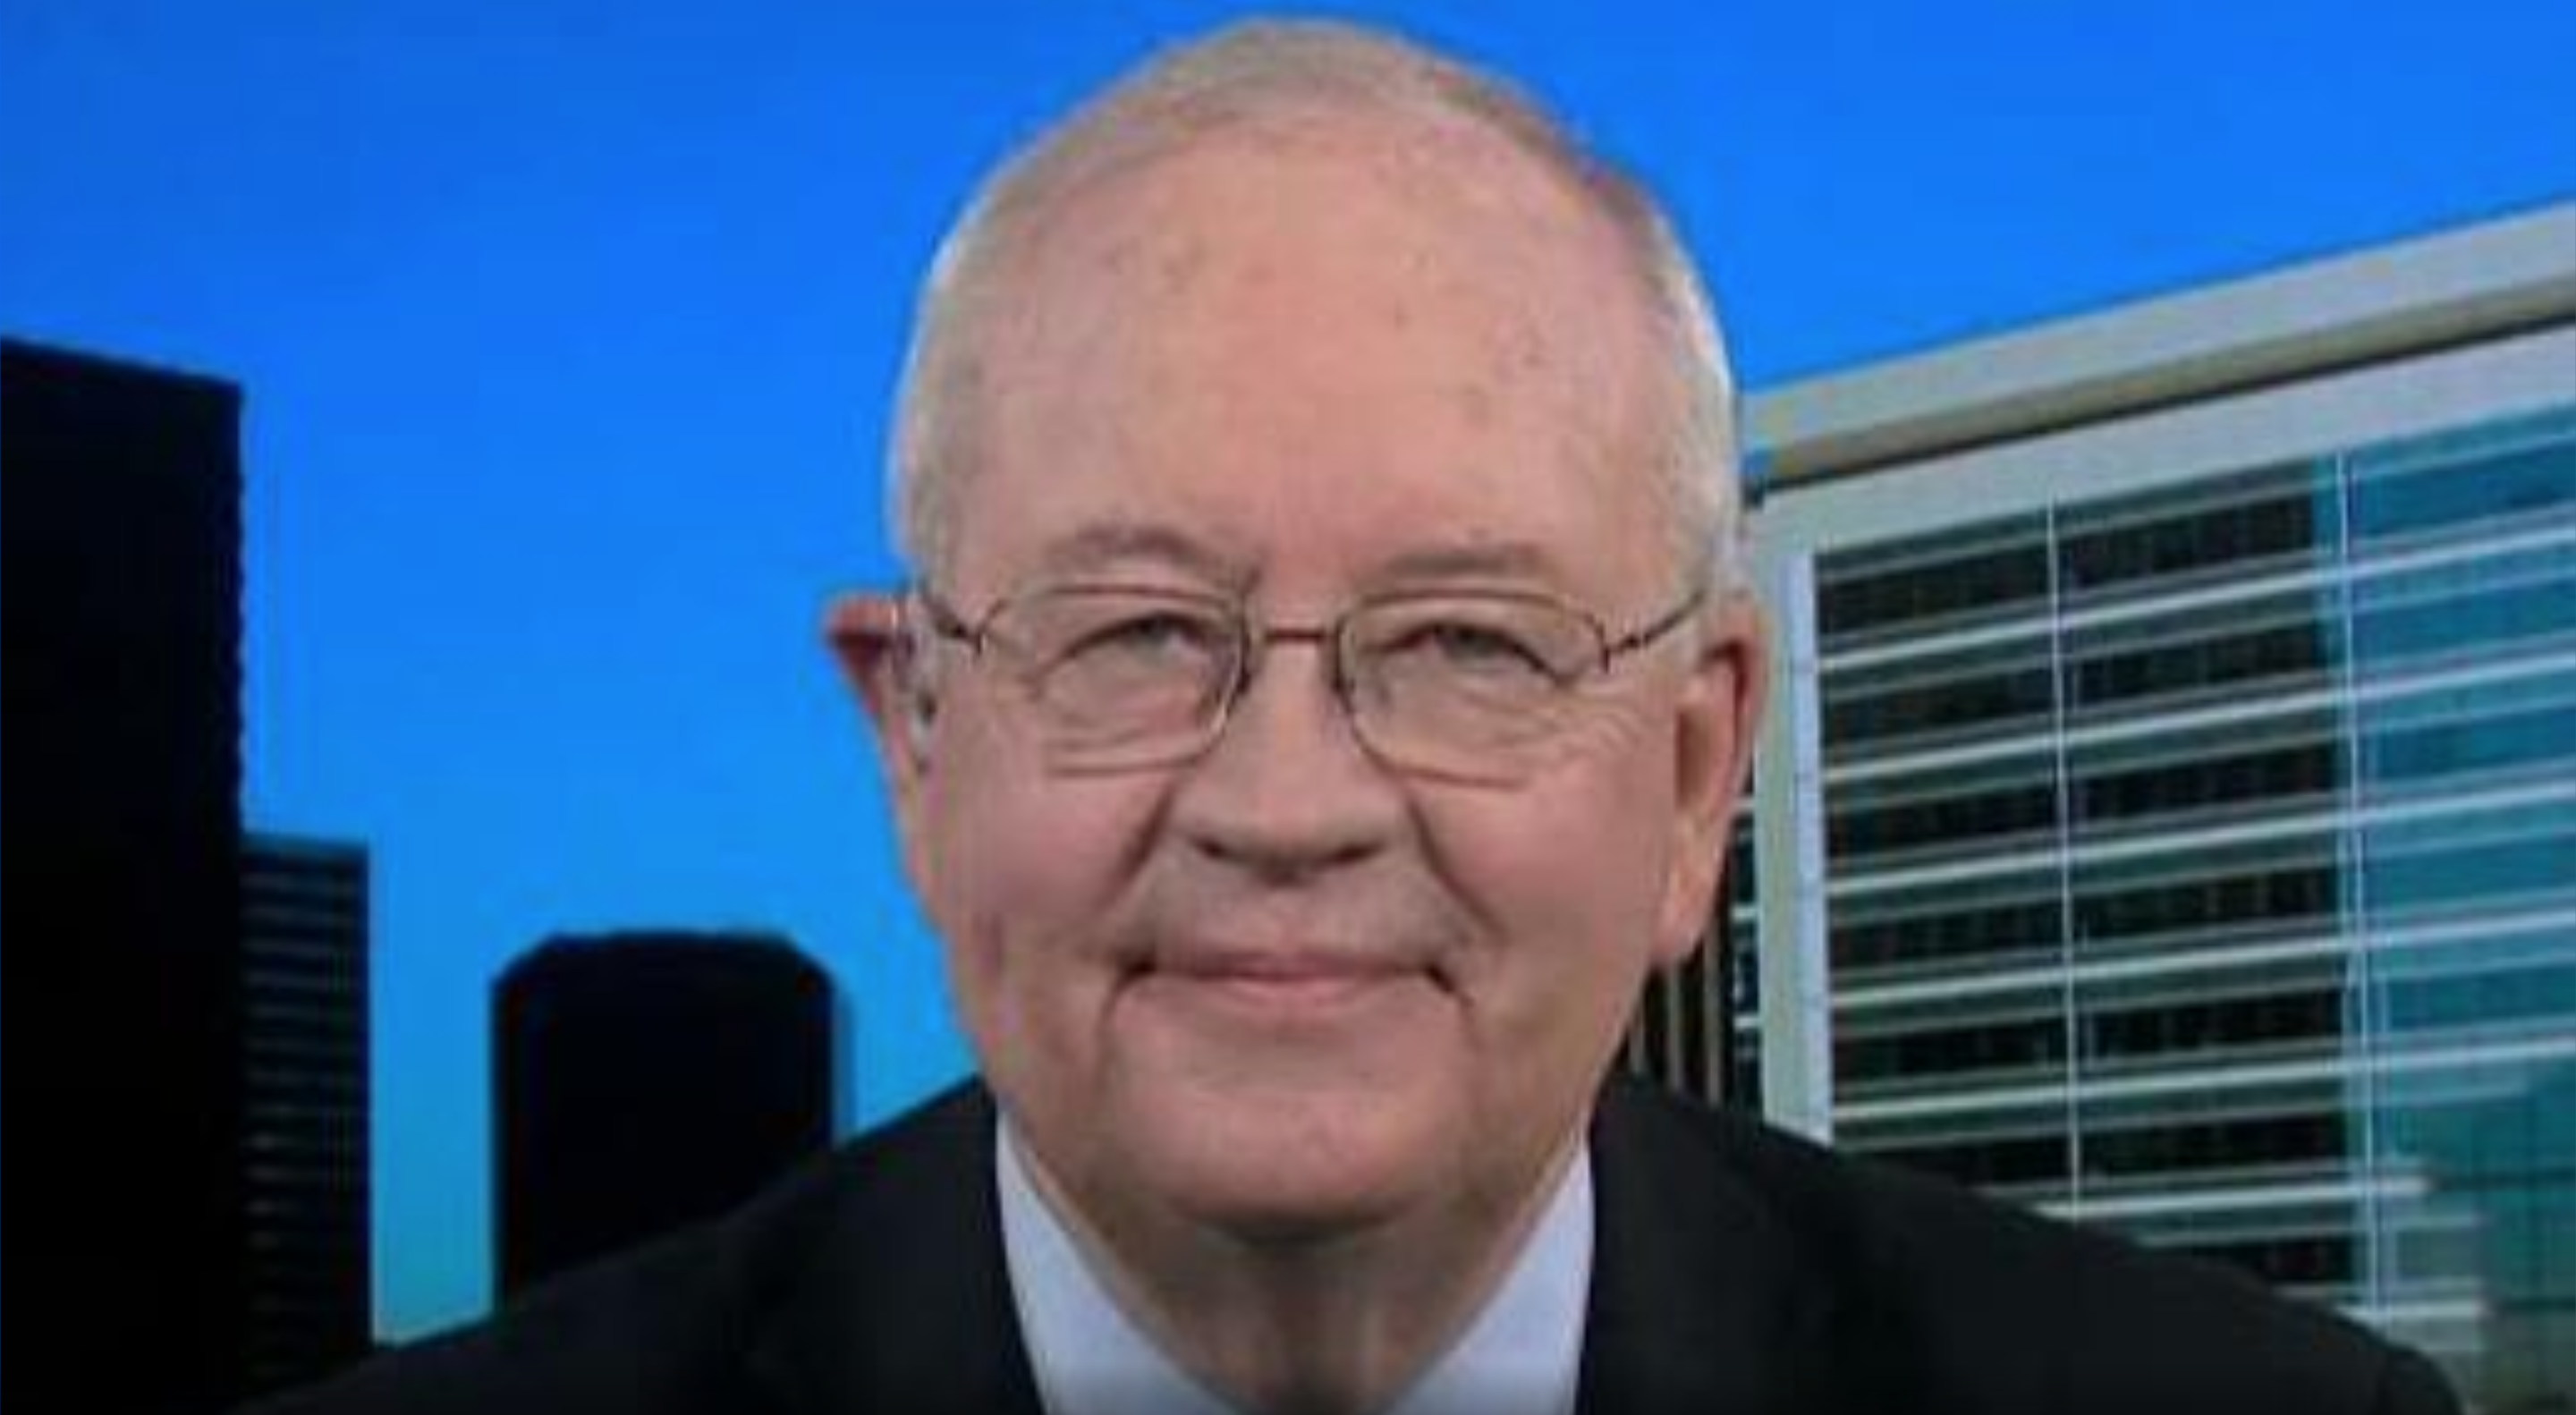 Westlake Legal Group Screen-Shot-2019-10-18-at-1.38.09-PM Ken Starr: Mulvaney was 'pretty close' to admitting Ukraine quid pro quo, may be 'under oath' soon Joshua Nelson fox-news/topic/fox-news-flash fox-news/shows/americas-newsroom fox-news/politics/trump-impeachment-inquiry fox news fnc/media fnc article 93634130-fcc7-5d17-afd5-2d096cbeef0b